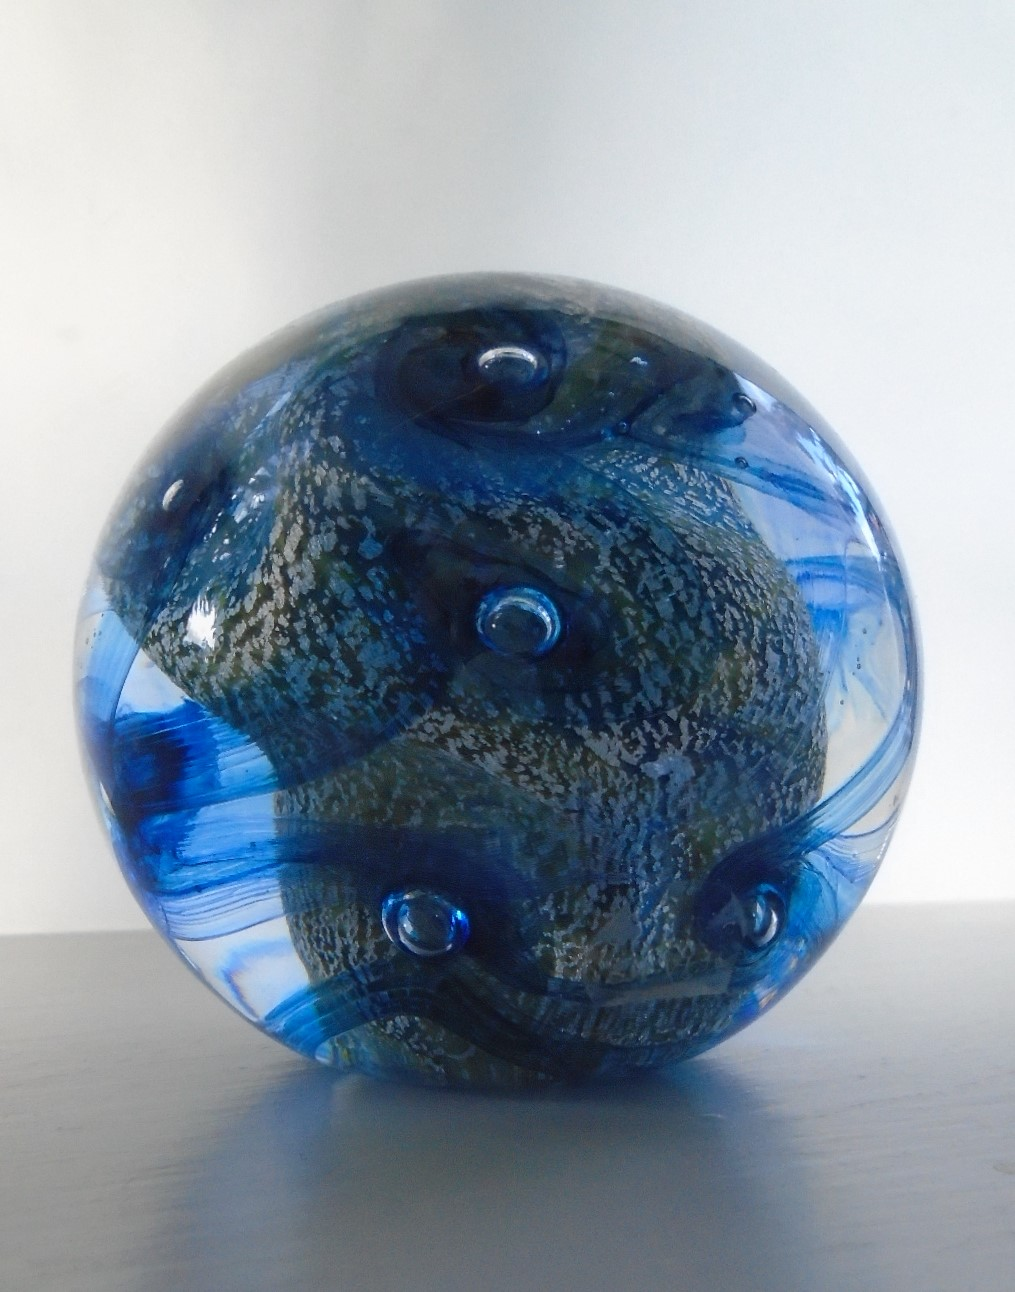 English Paperweight Design from Paul Critchley of Sculptglass on the Isle of Wight.